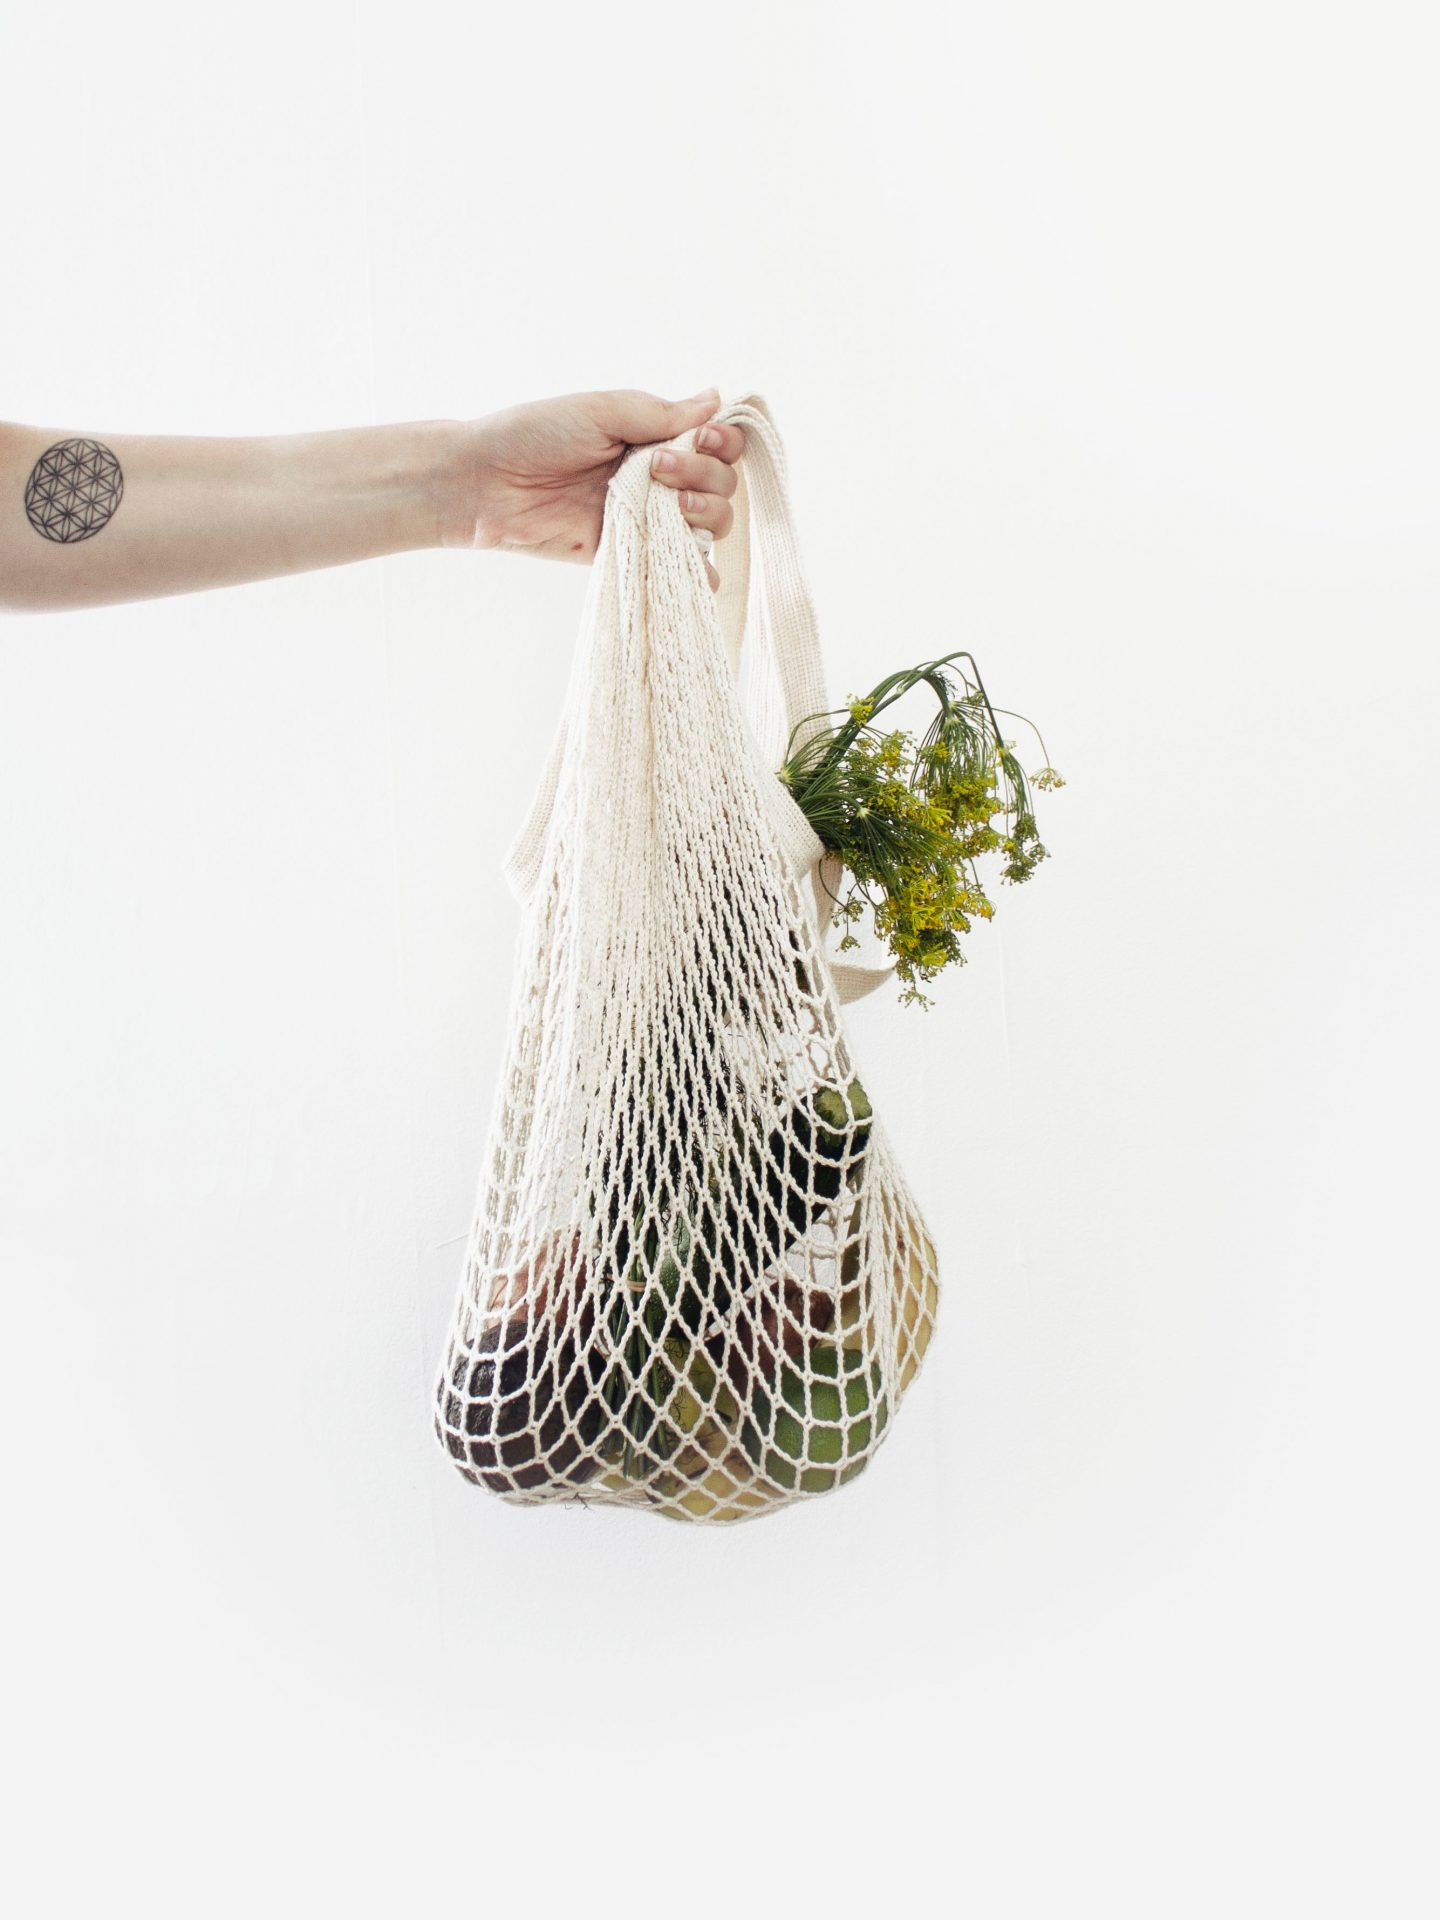 Everyday changes you can make to create less waste